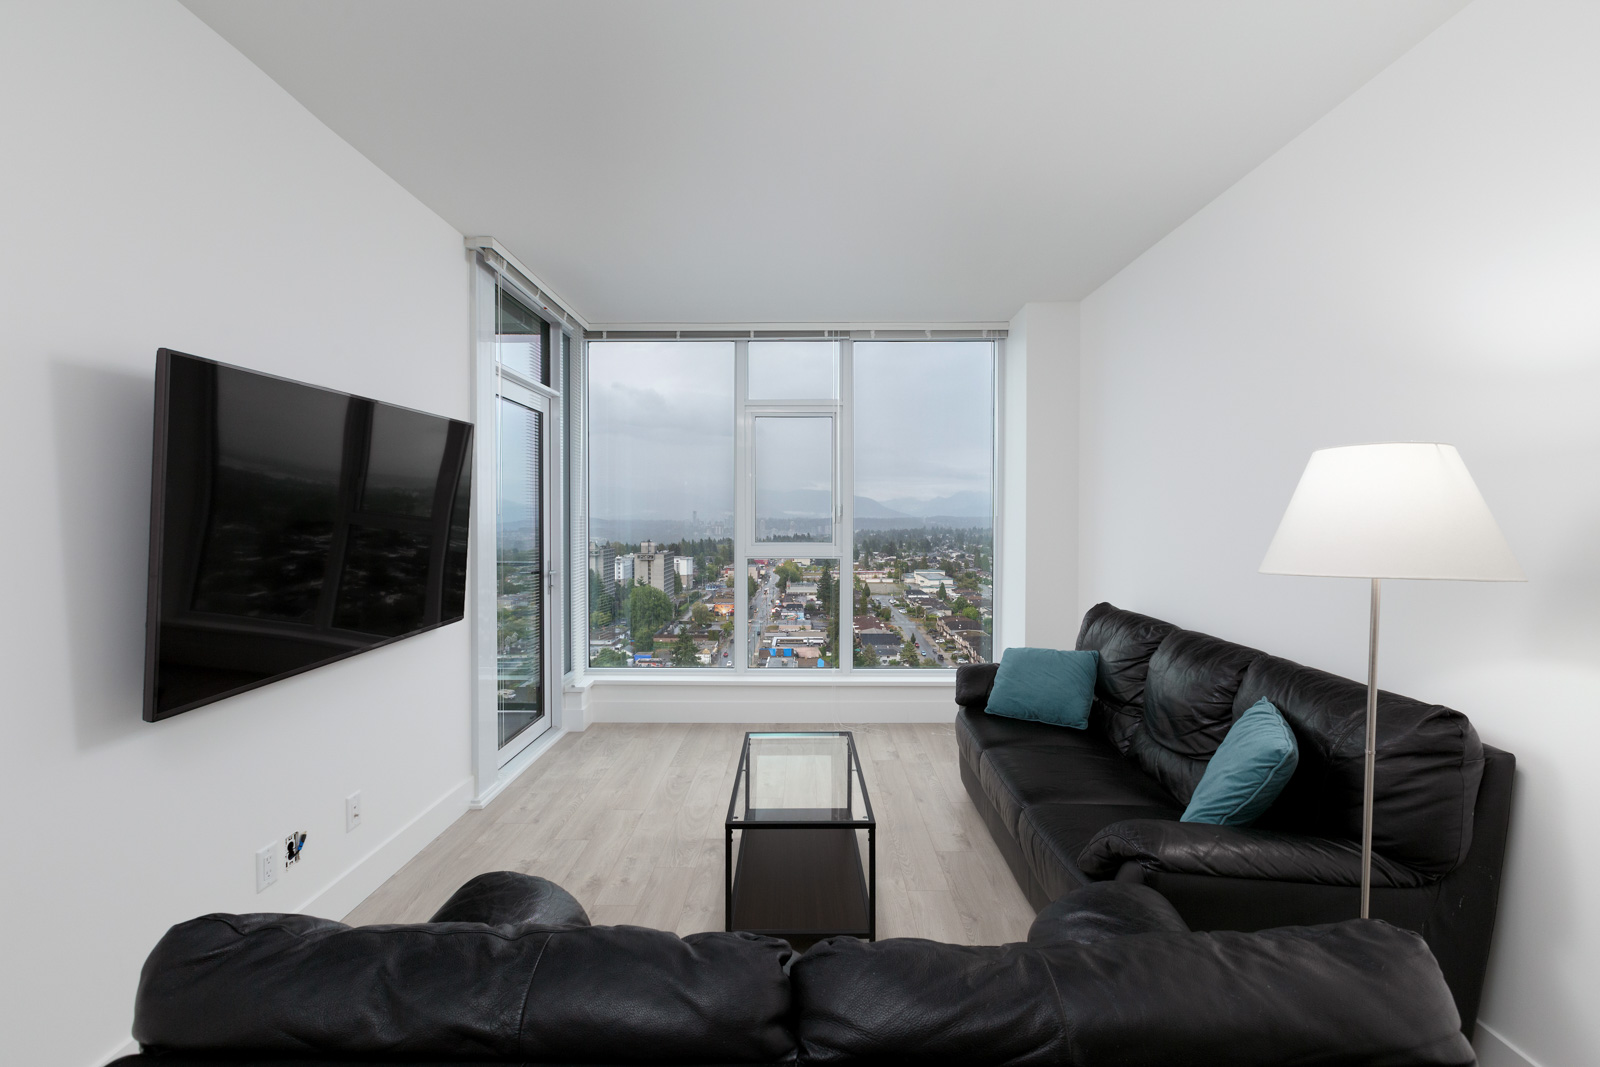 llving room of rental condo at kings crossing three in burnaby with window and view in background